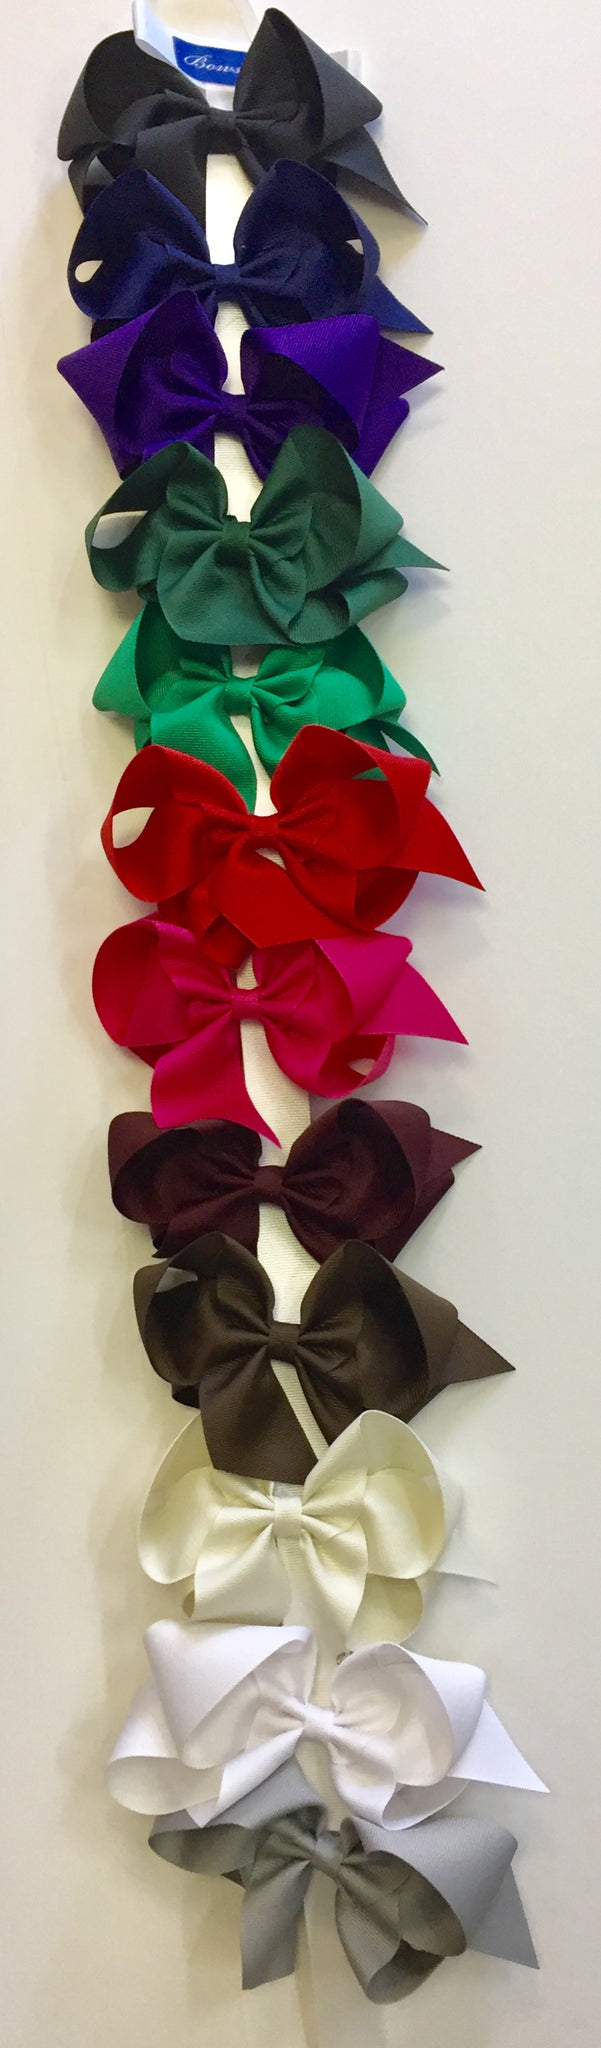 Giant Grosgrain Bow